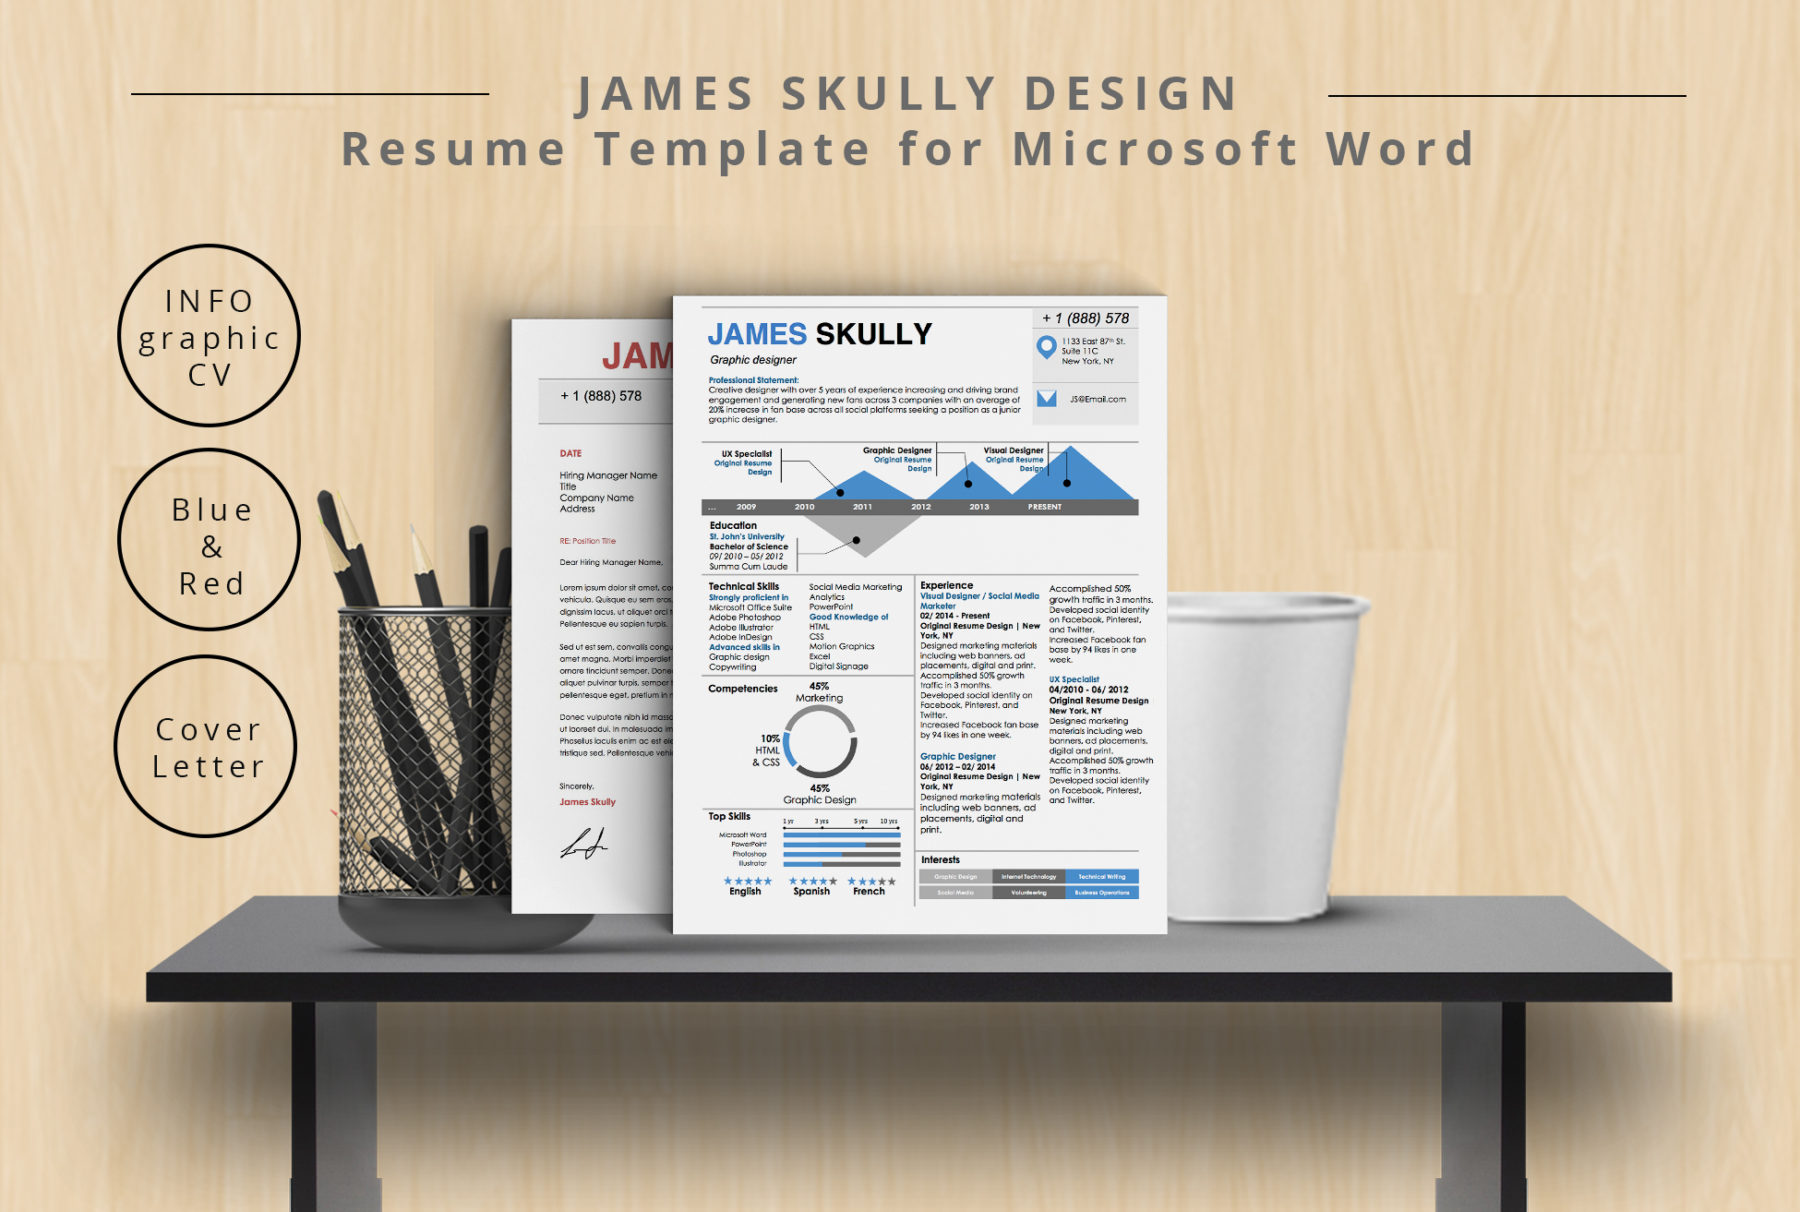 James Skully Resume Template Stand Out Shop